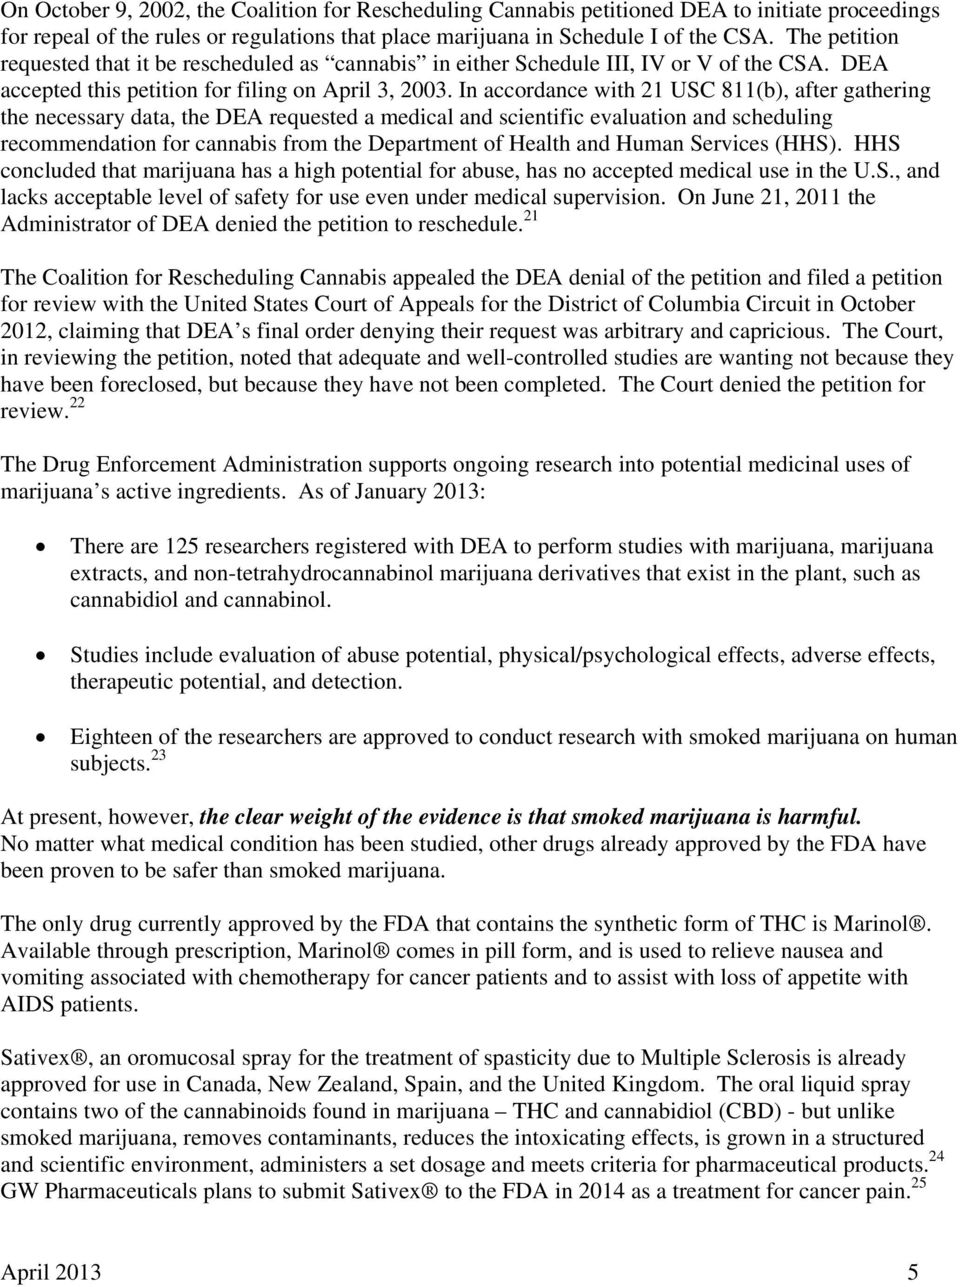 In accordance with 21 USC 811(b), after gathering the necessary data, the DEA requested a medical and scientific evaluation and scheduling recommendation for cannabis from the Department of Health